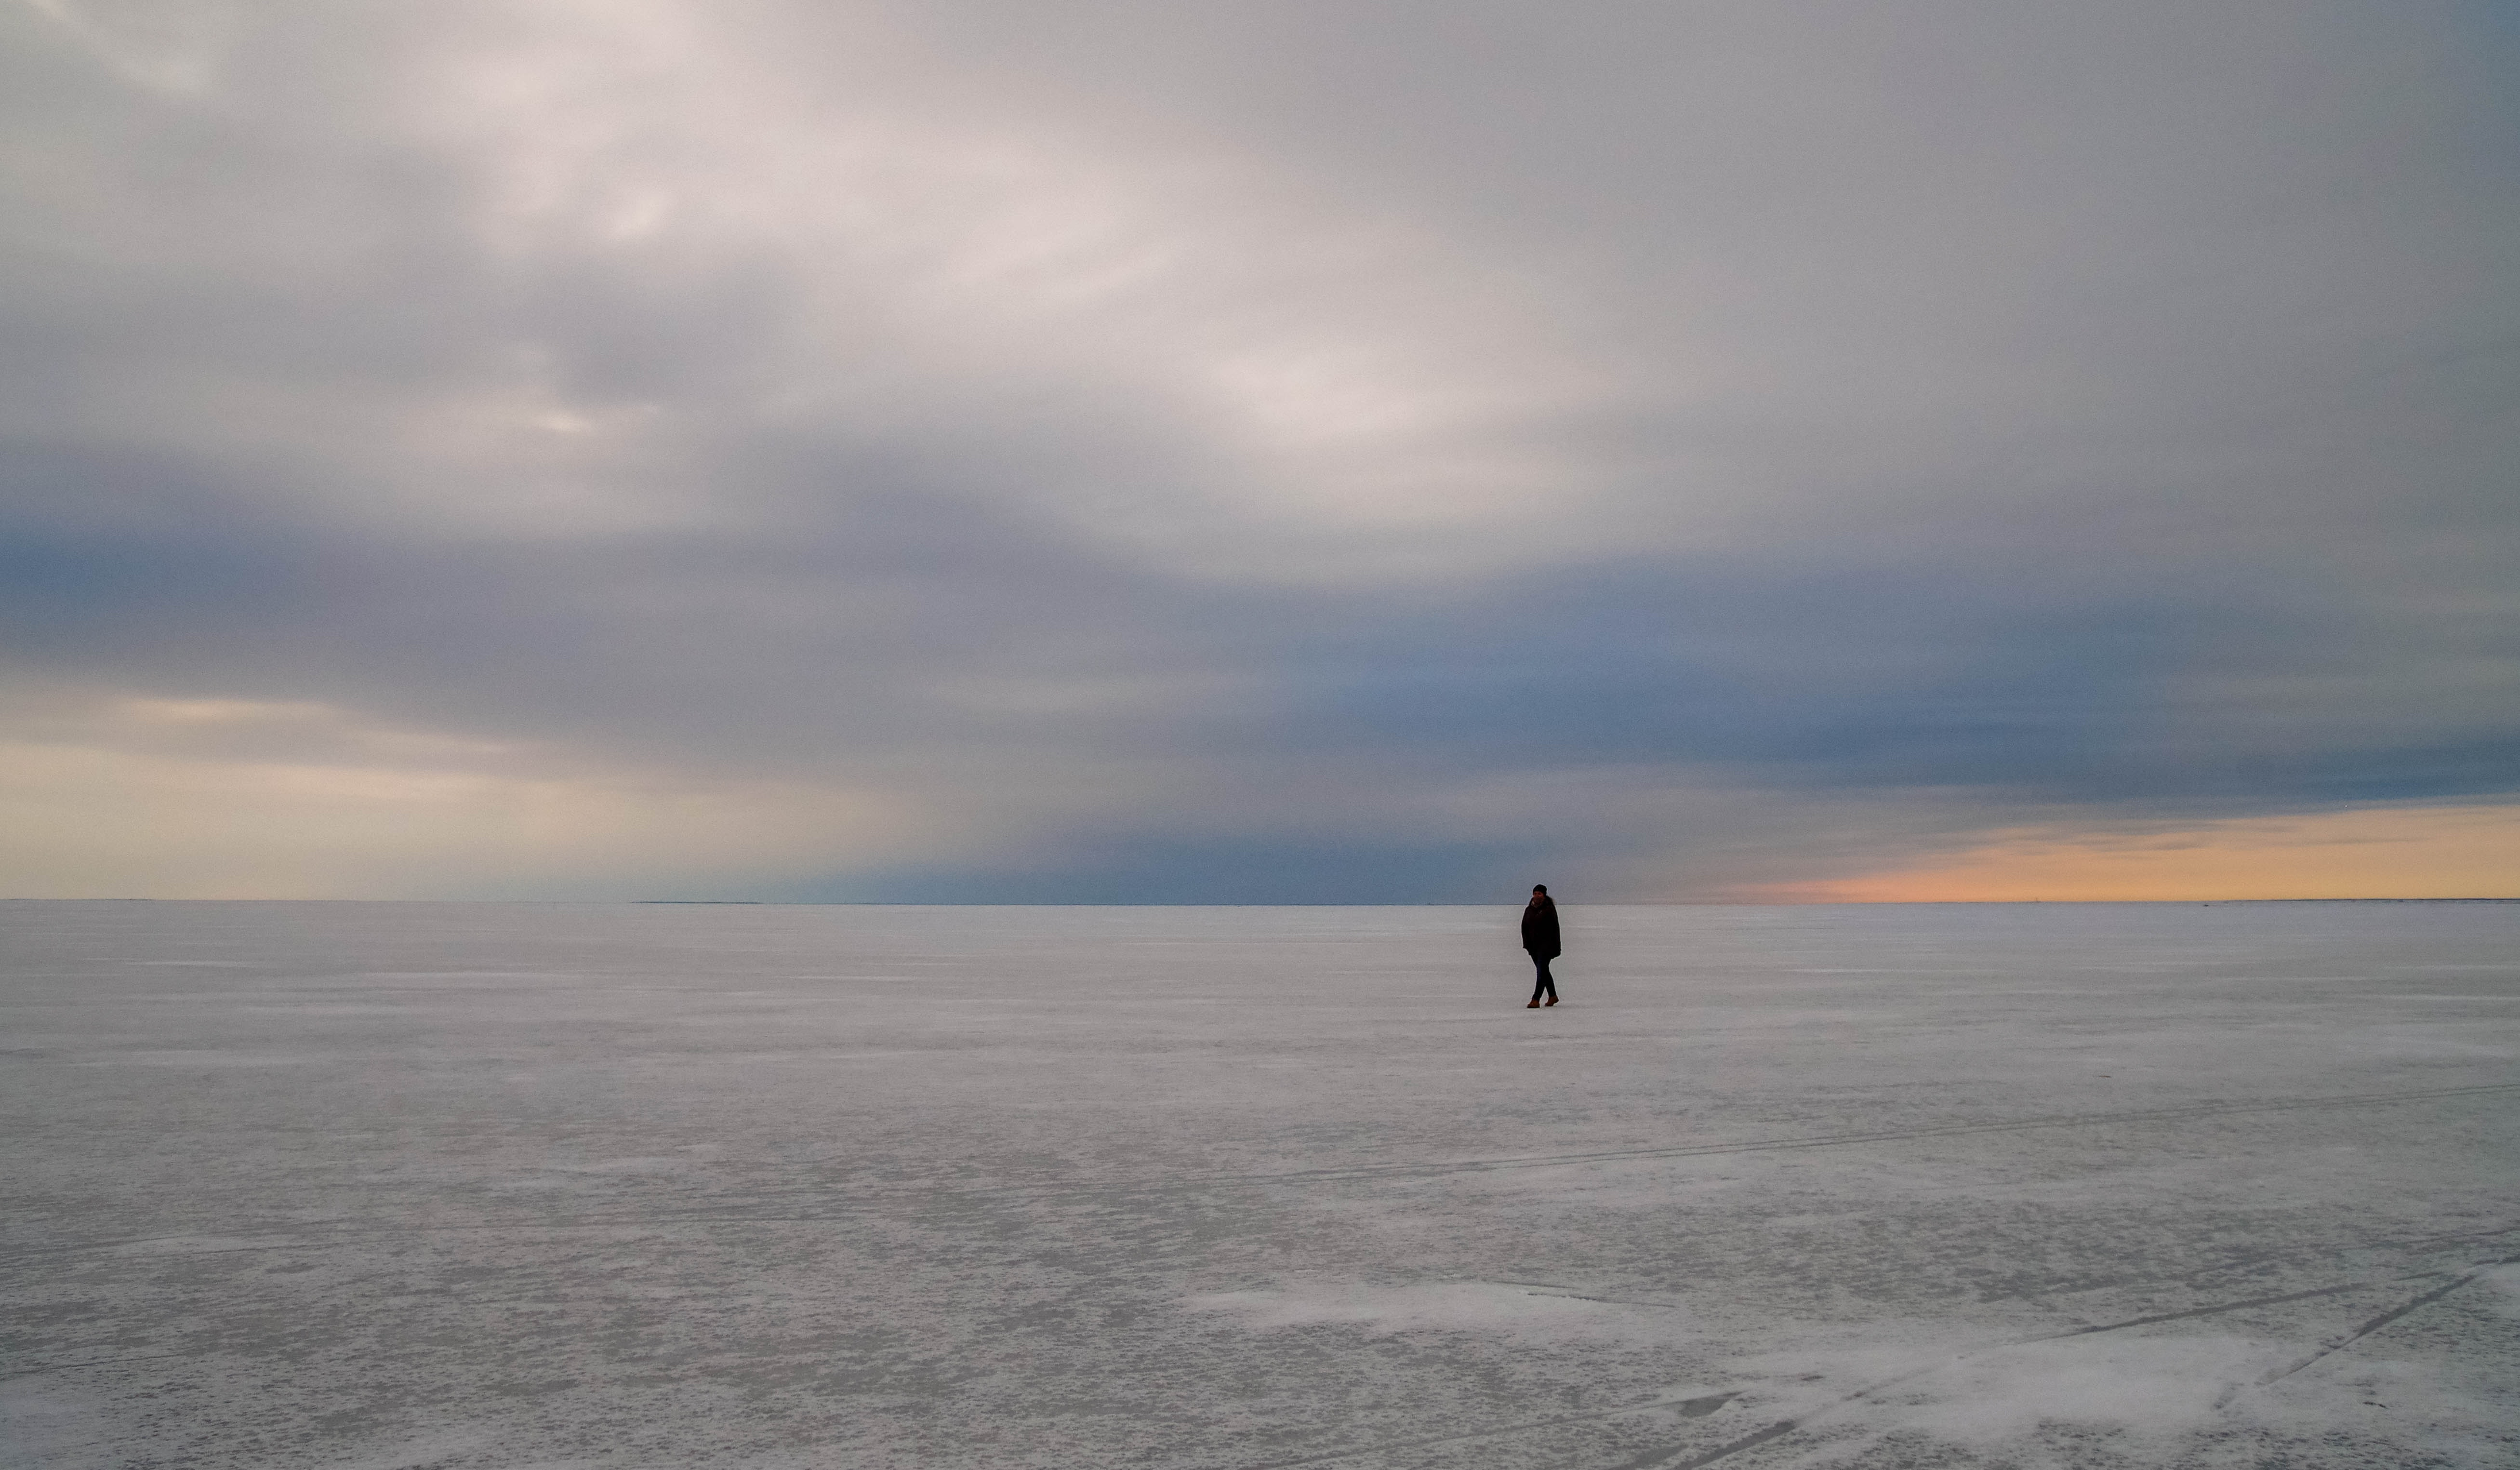 Silhouette of person walking on vast land photo